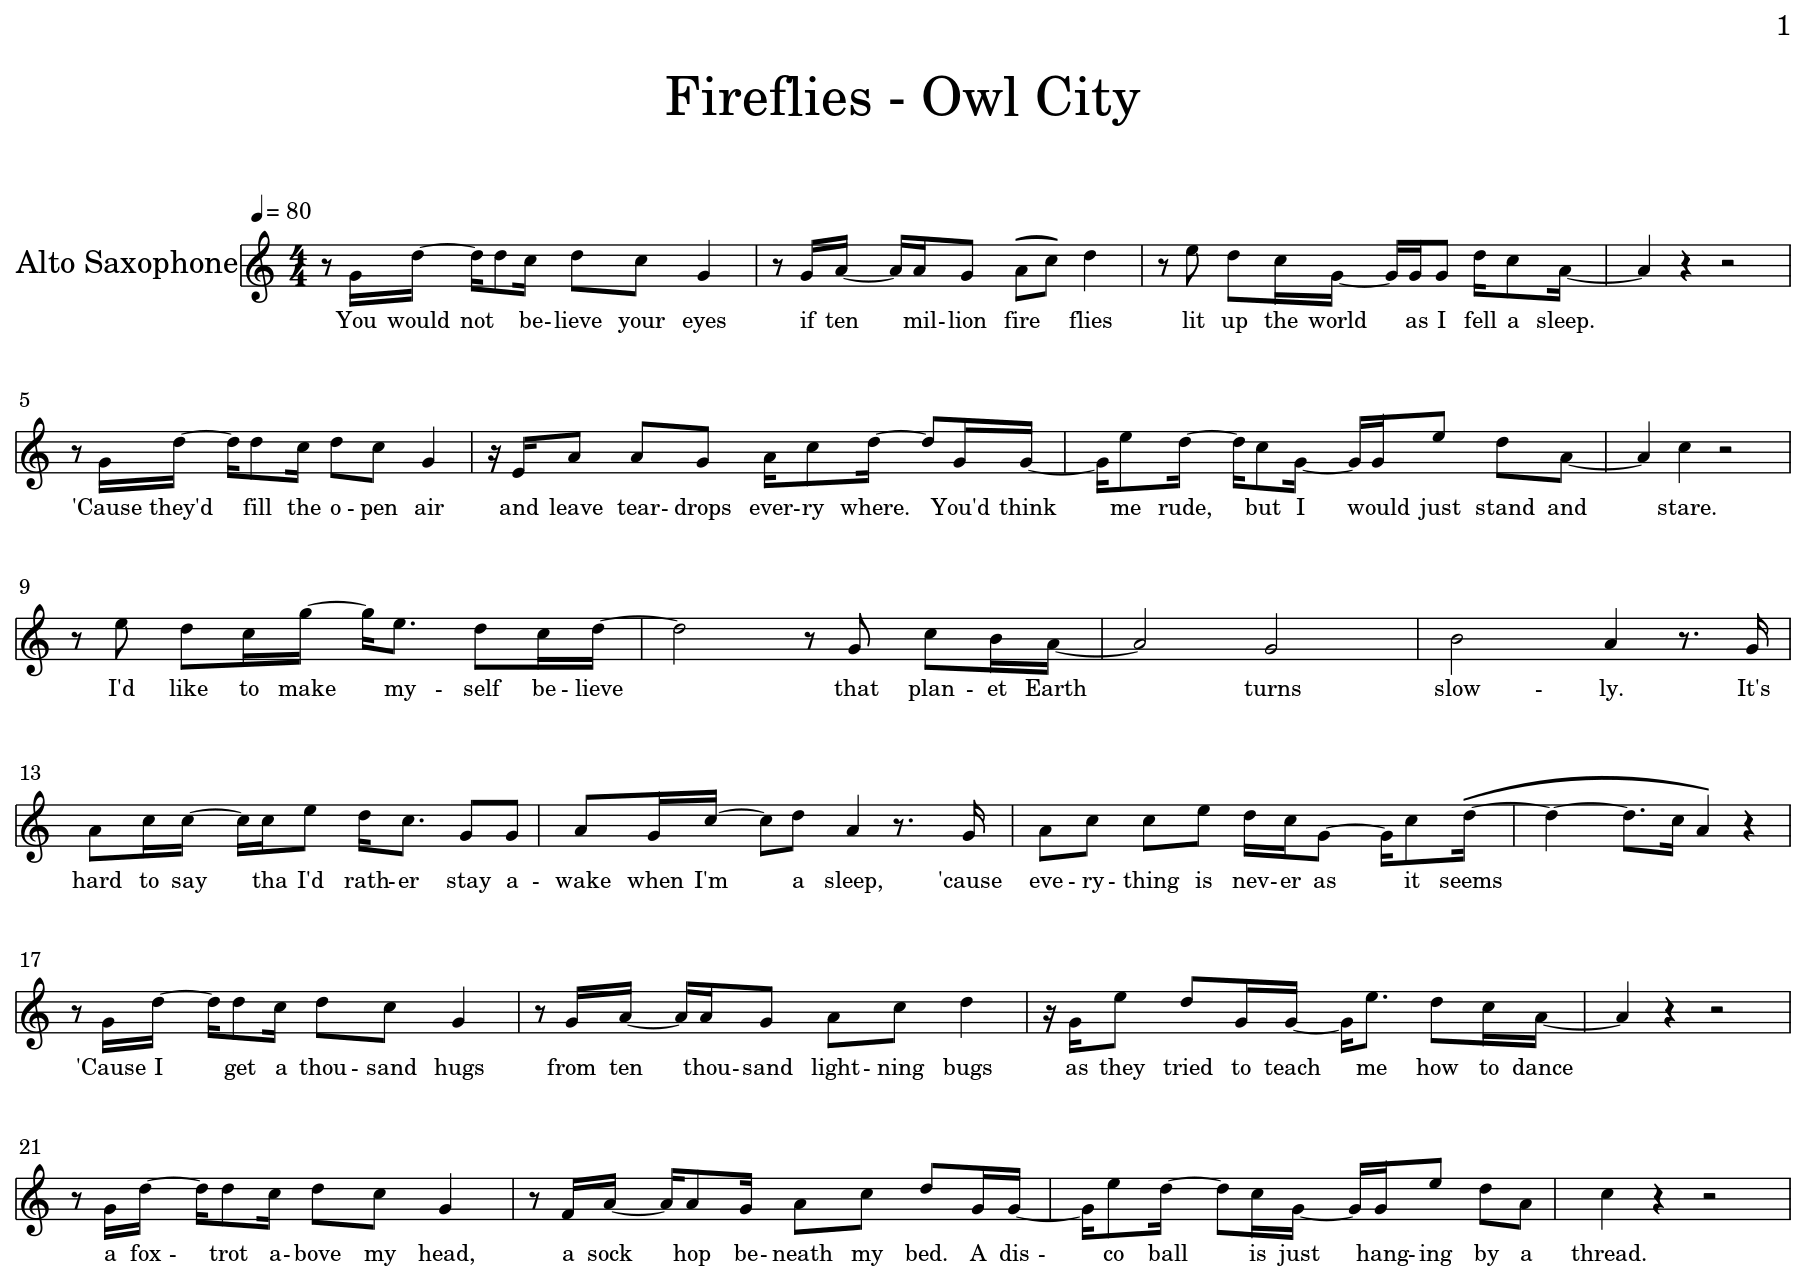 Fireflies - Owl City - Flat